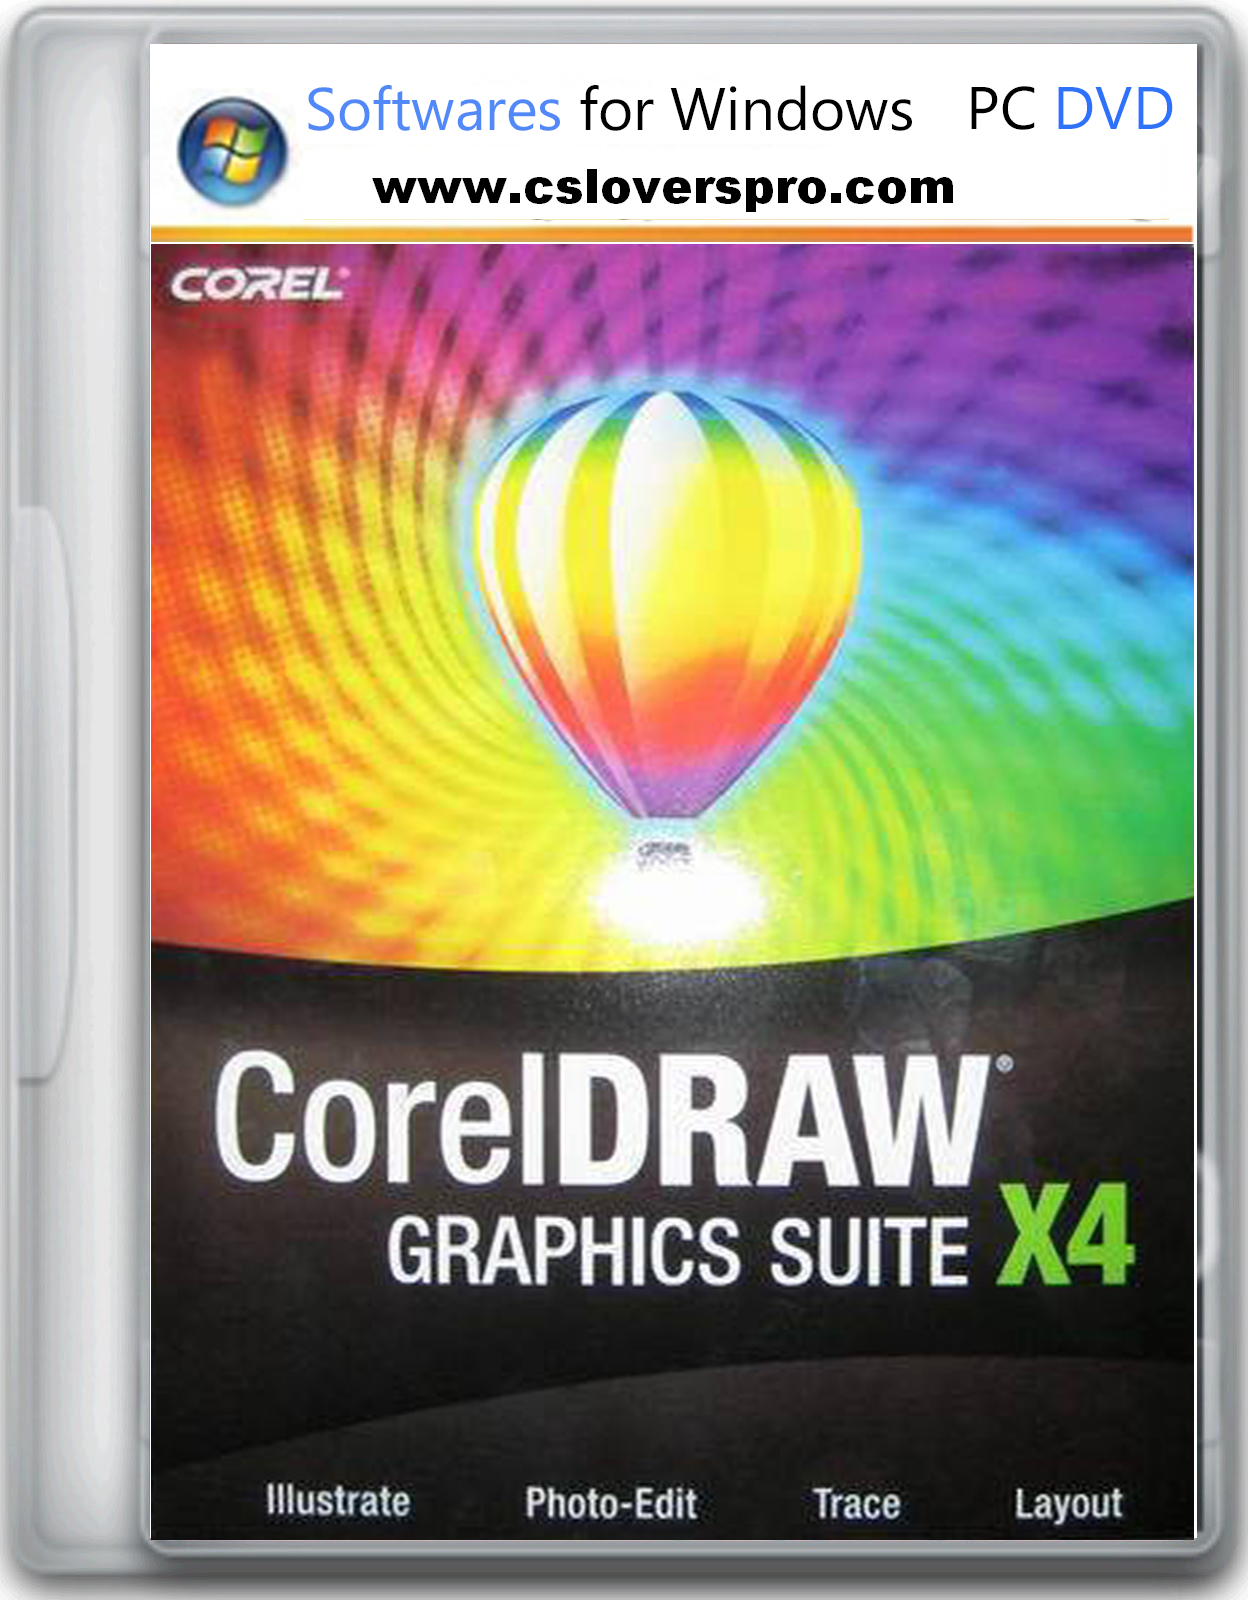 Coreldraw graphics suite x4 14.0 full serial activation code